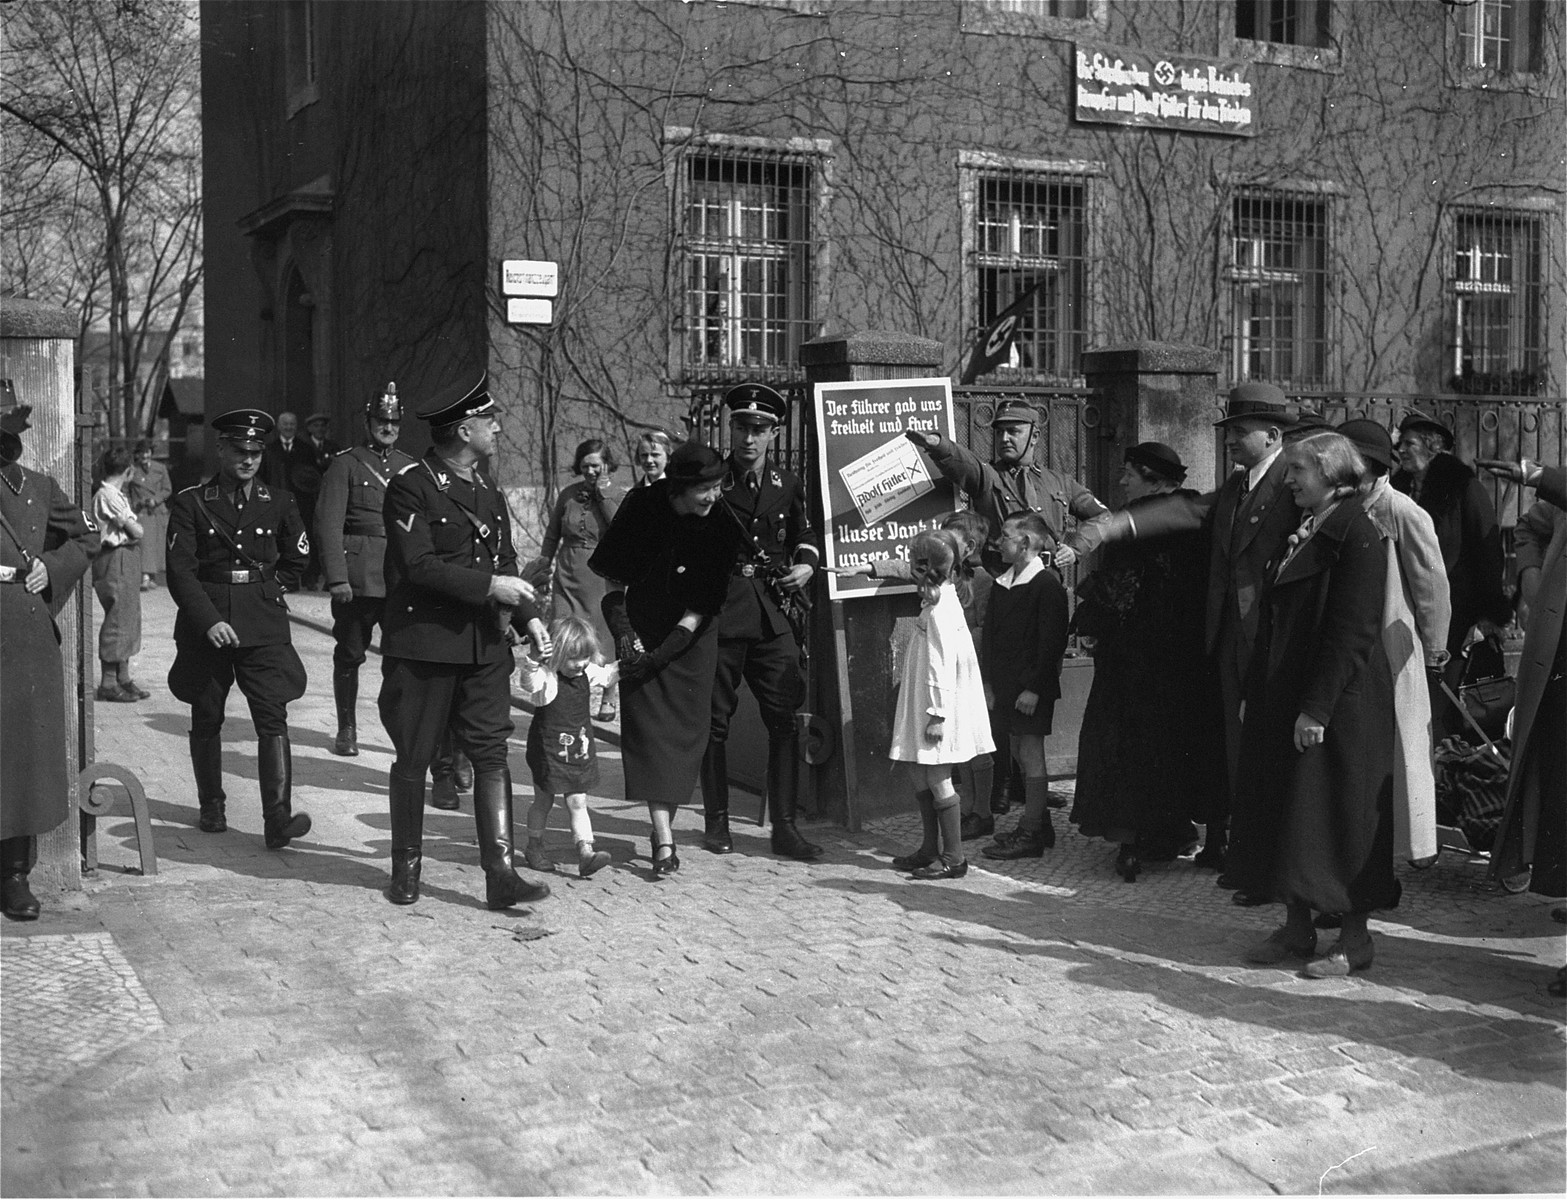 A member of the SA snaps a salute as Nazi Foreign Minister Joachim von Ribbentrop, accompanied by his wife and daughter, exits a polling place where he has just cast his vote.